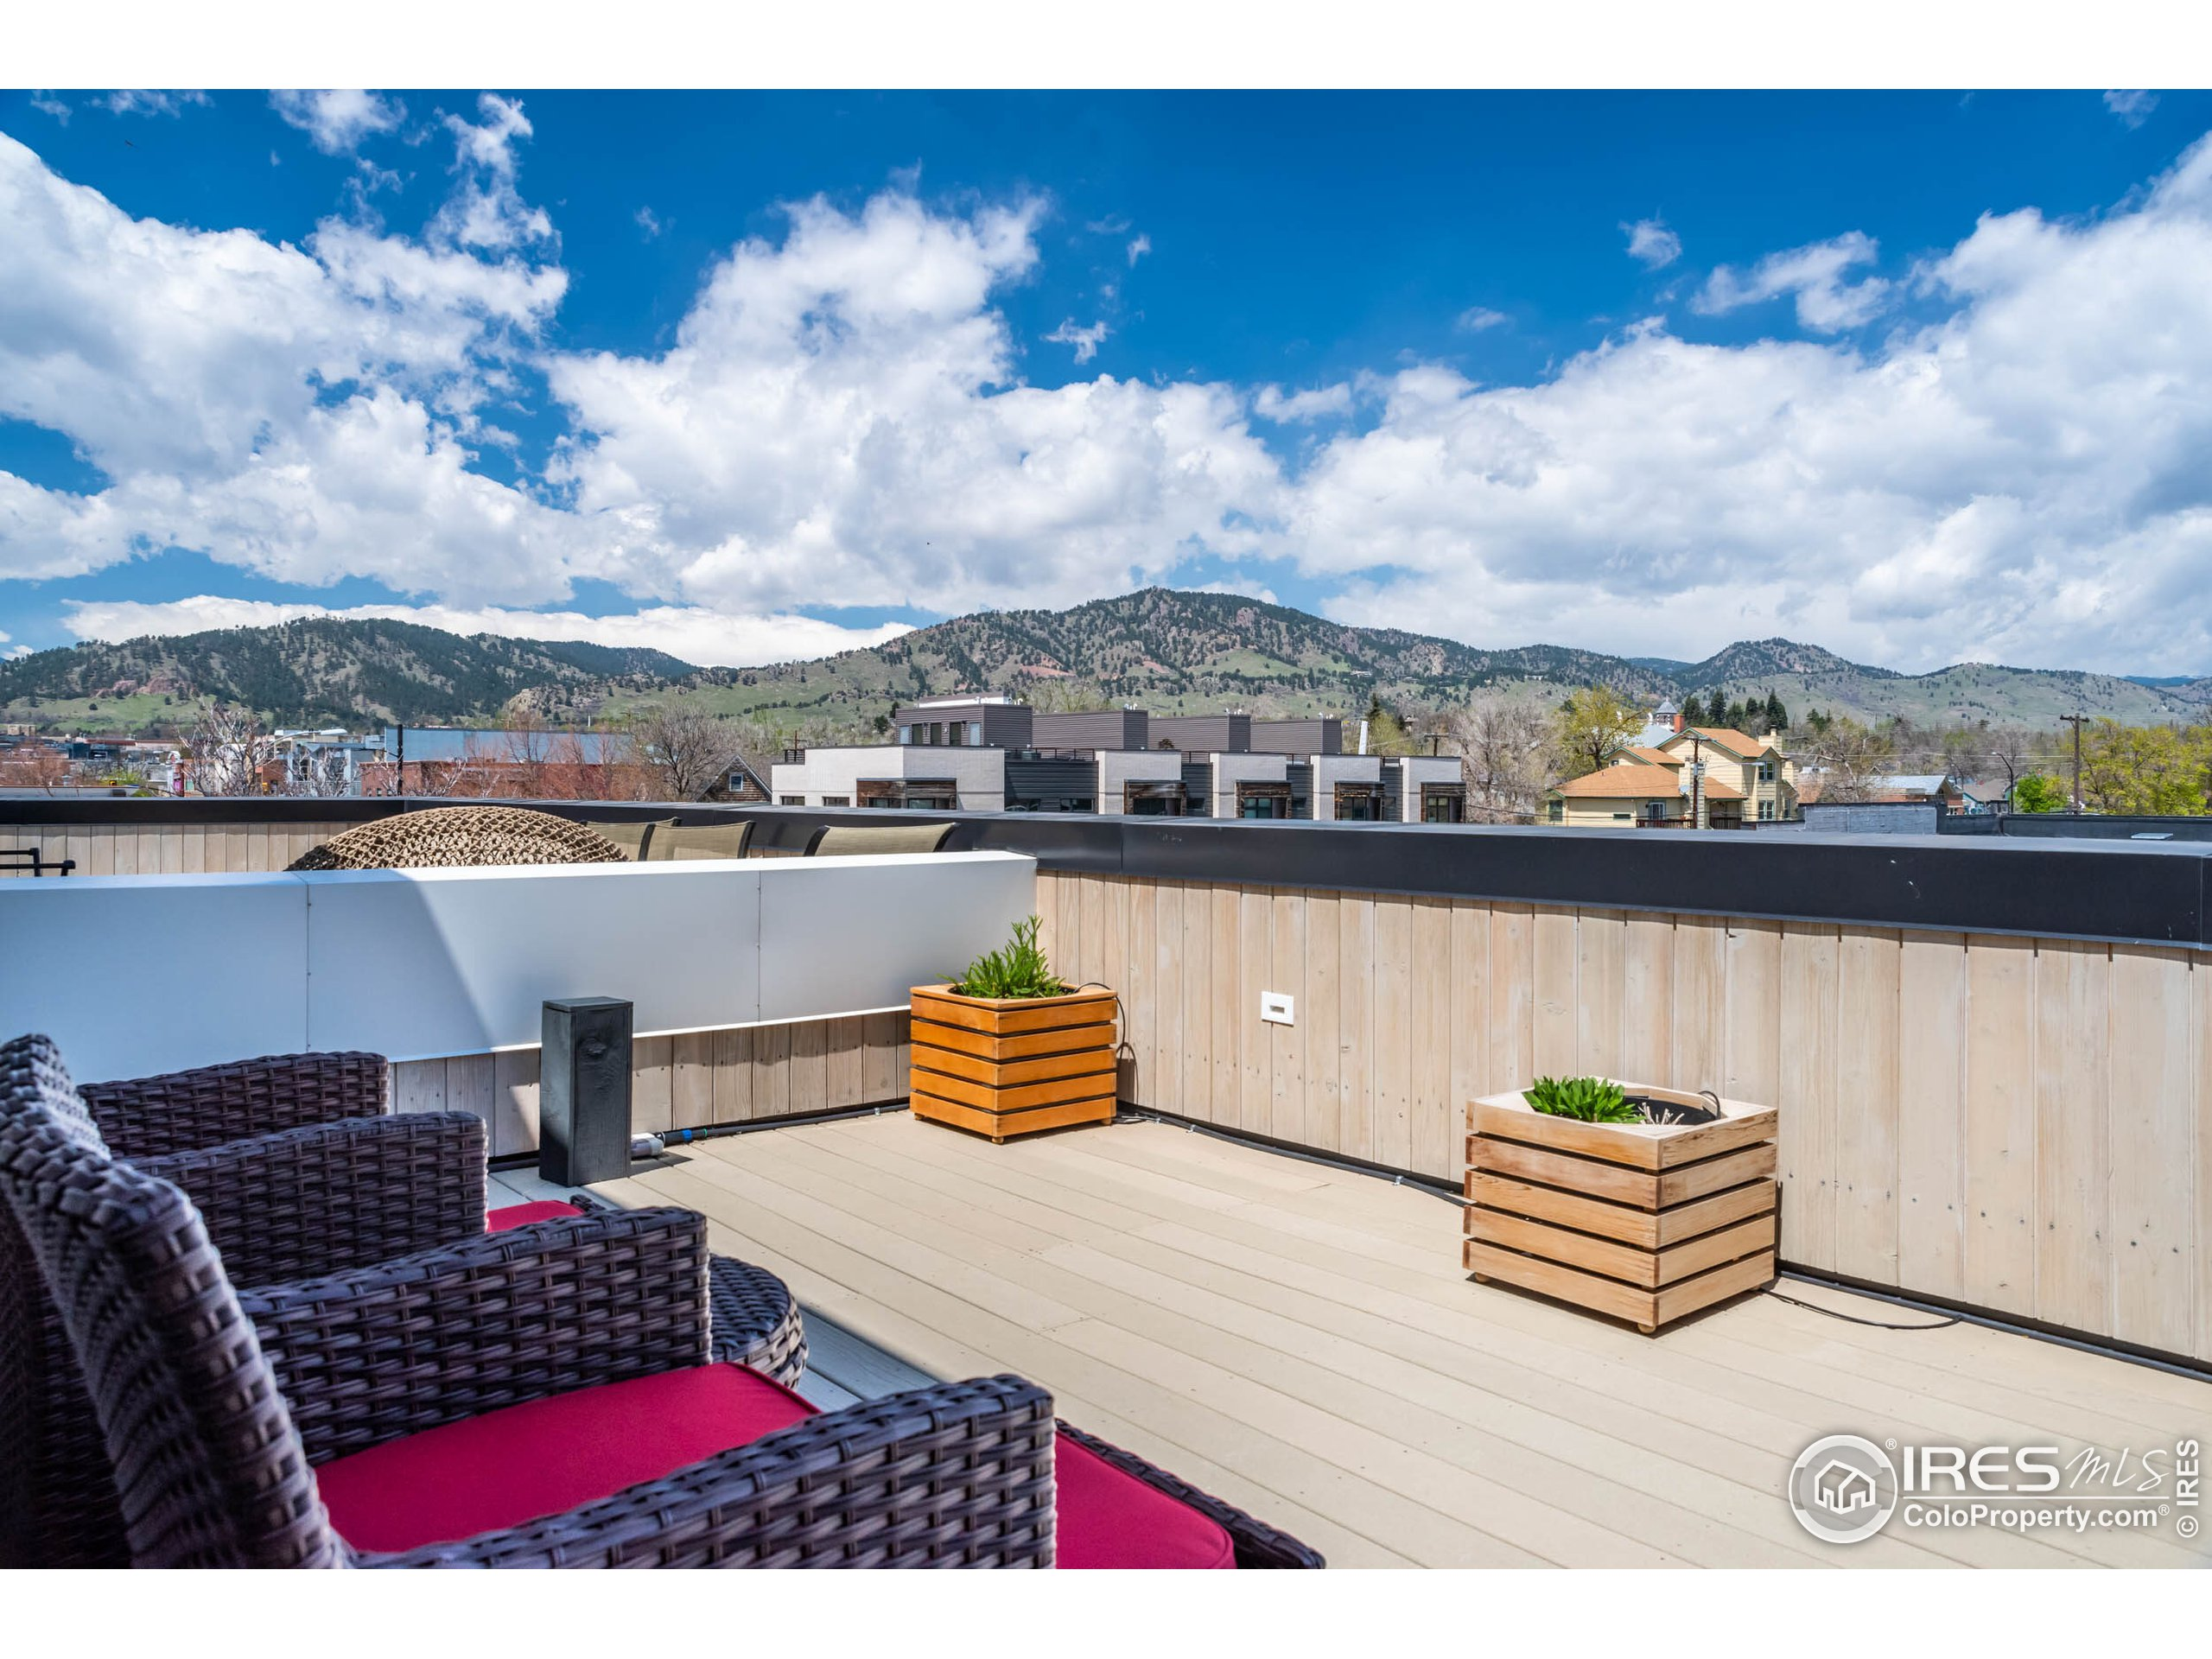 Rooftop Patio with VIEWS